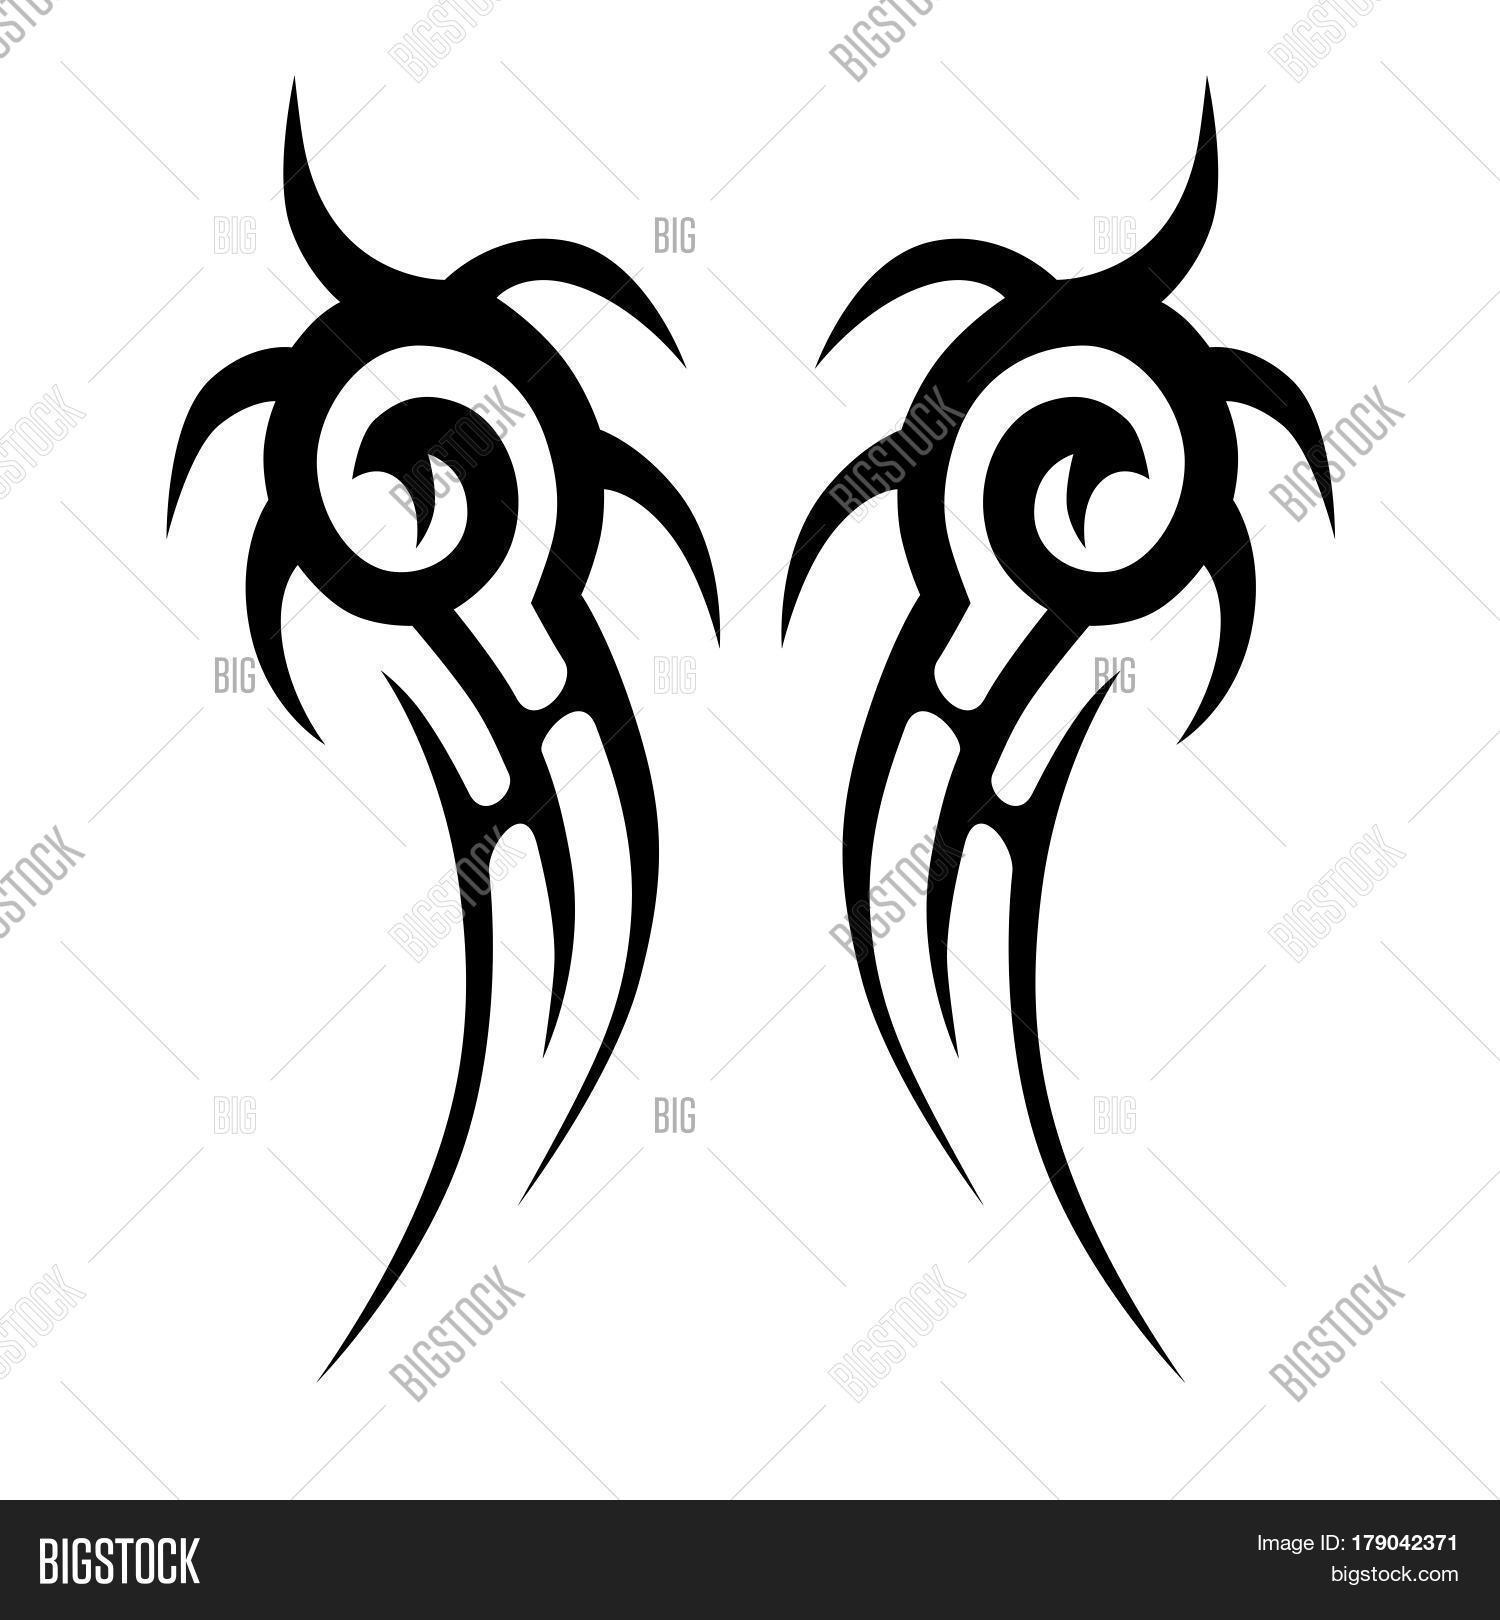 Tattoo Tribal Vector Photo Free Trial Bigstock for sizing 1500 X 1620